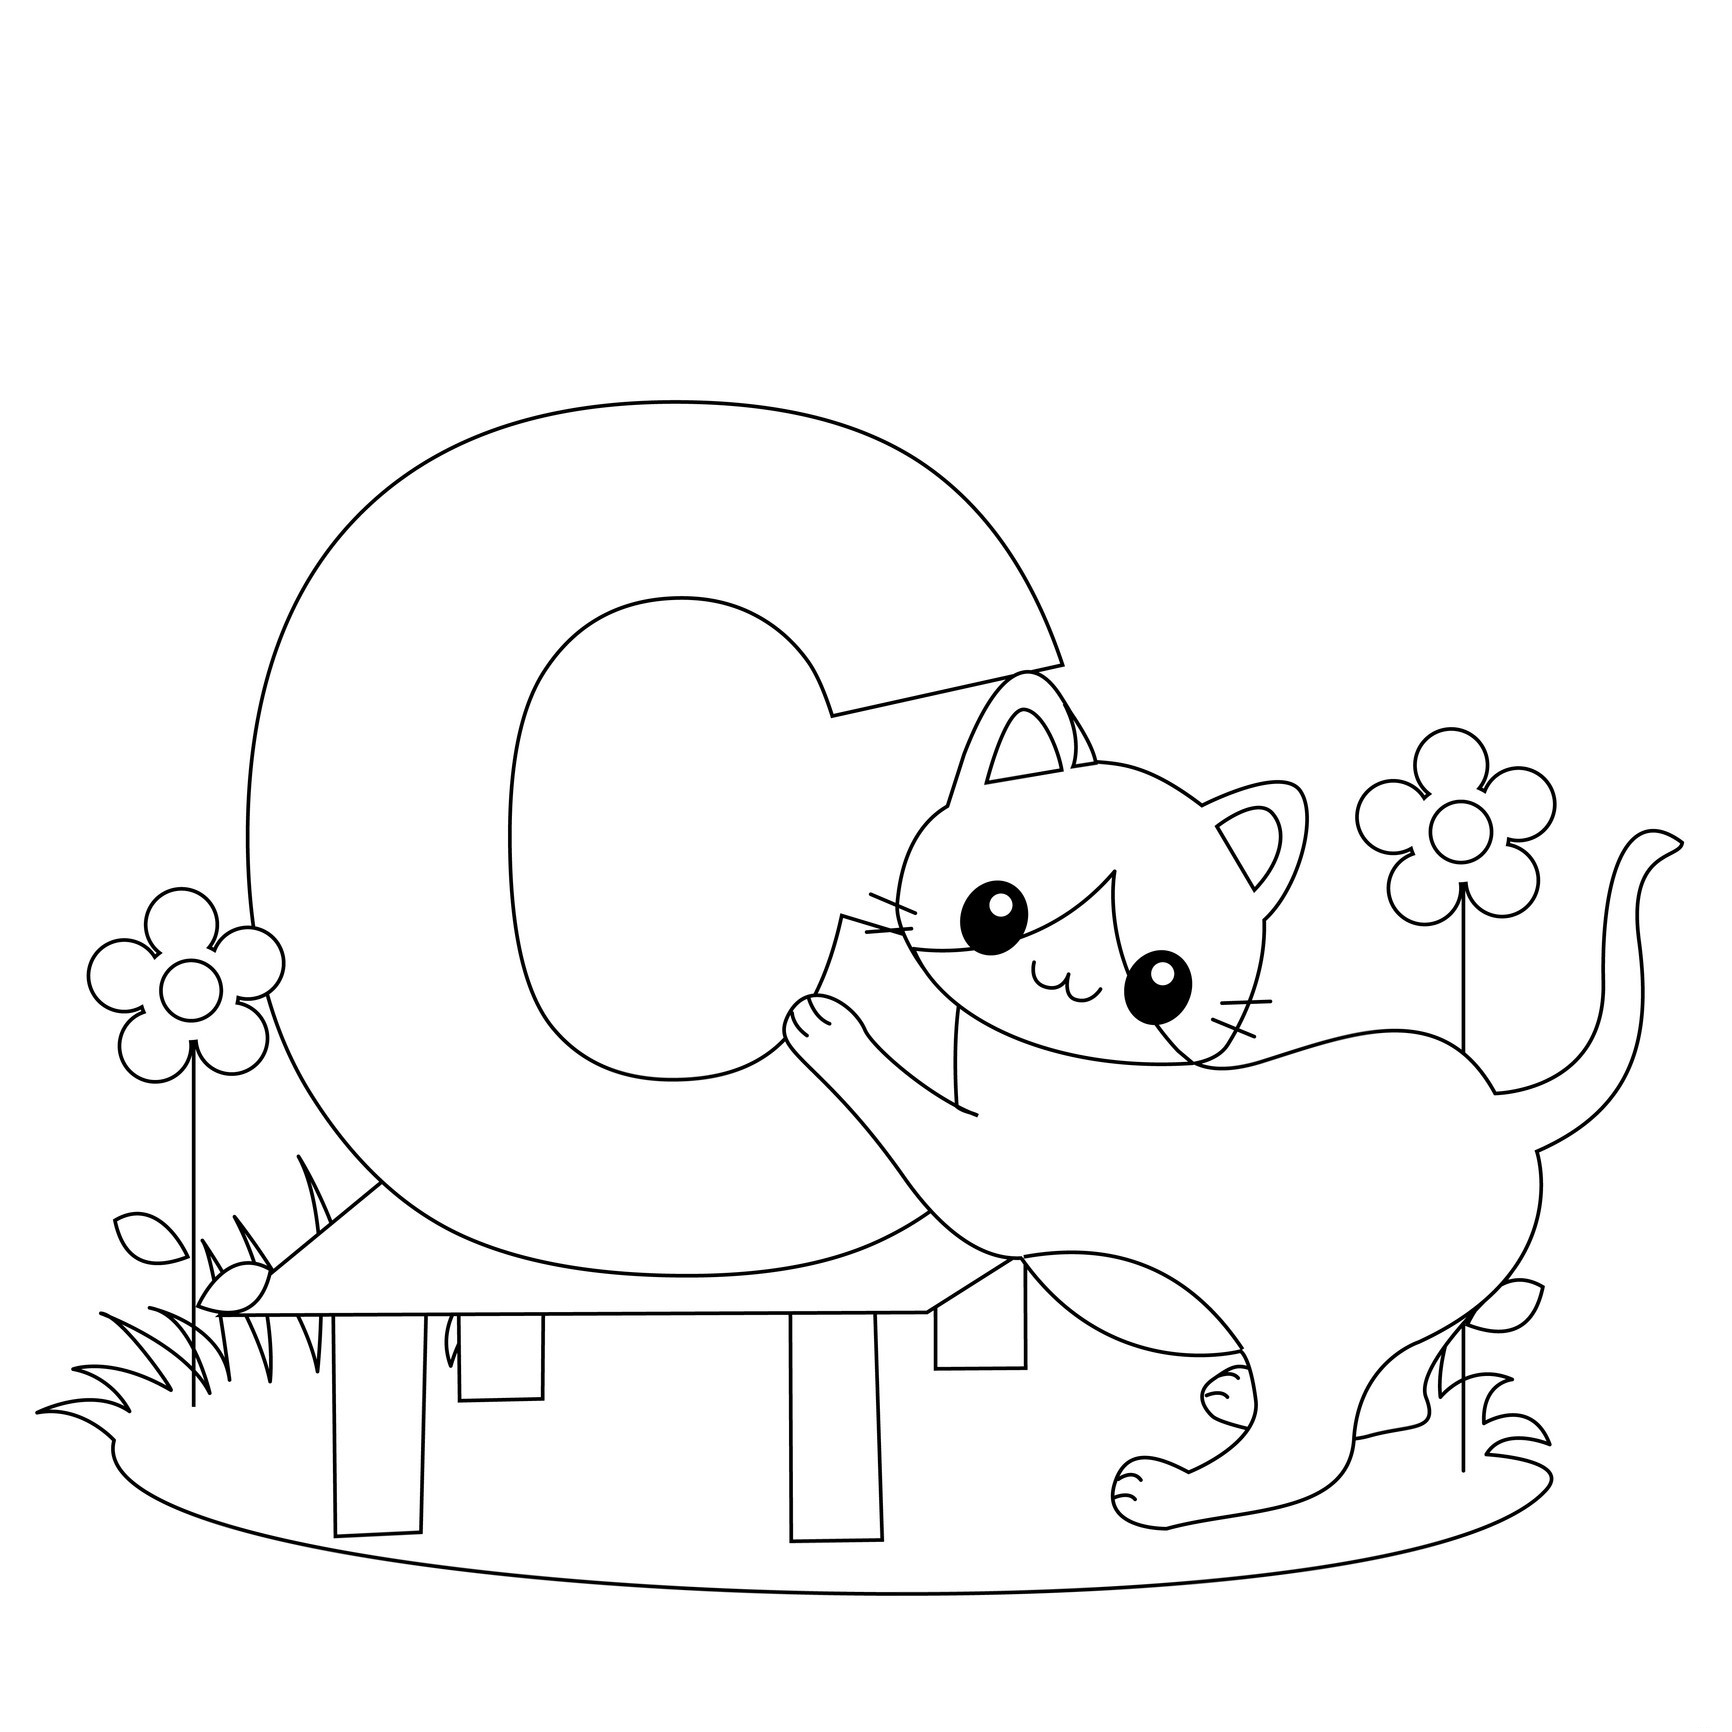 Alphabet i coloring pages - Alphabet Coloring Pages Letter C